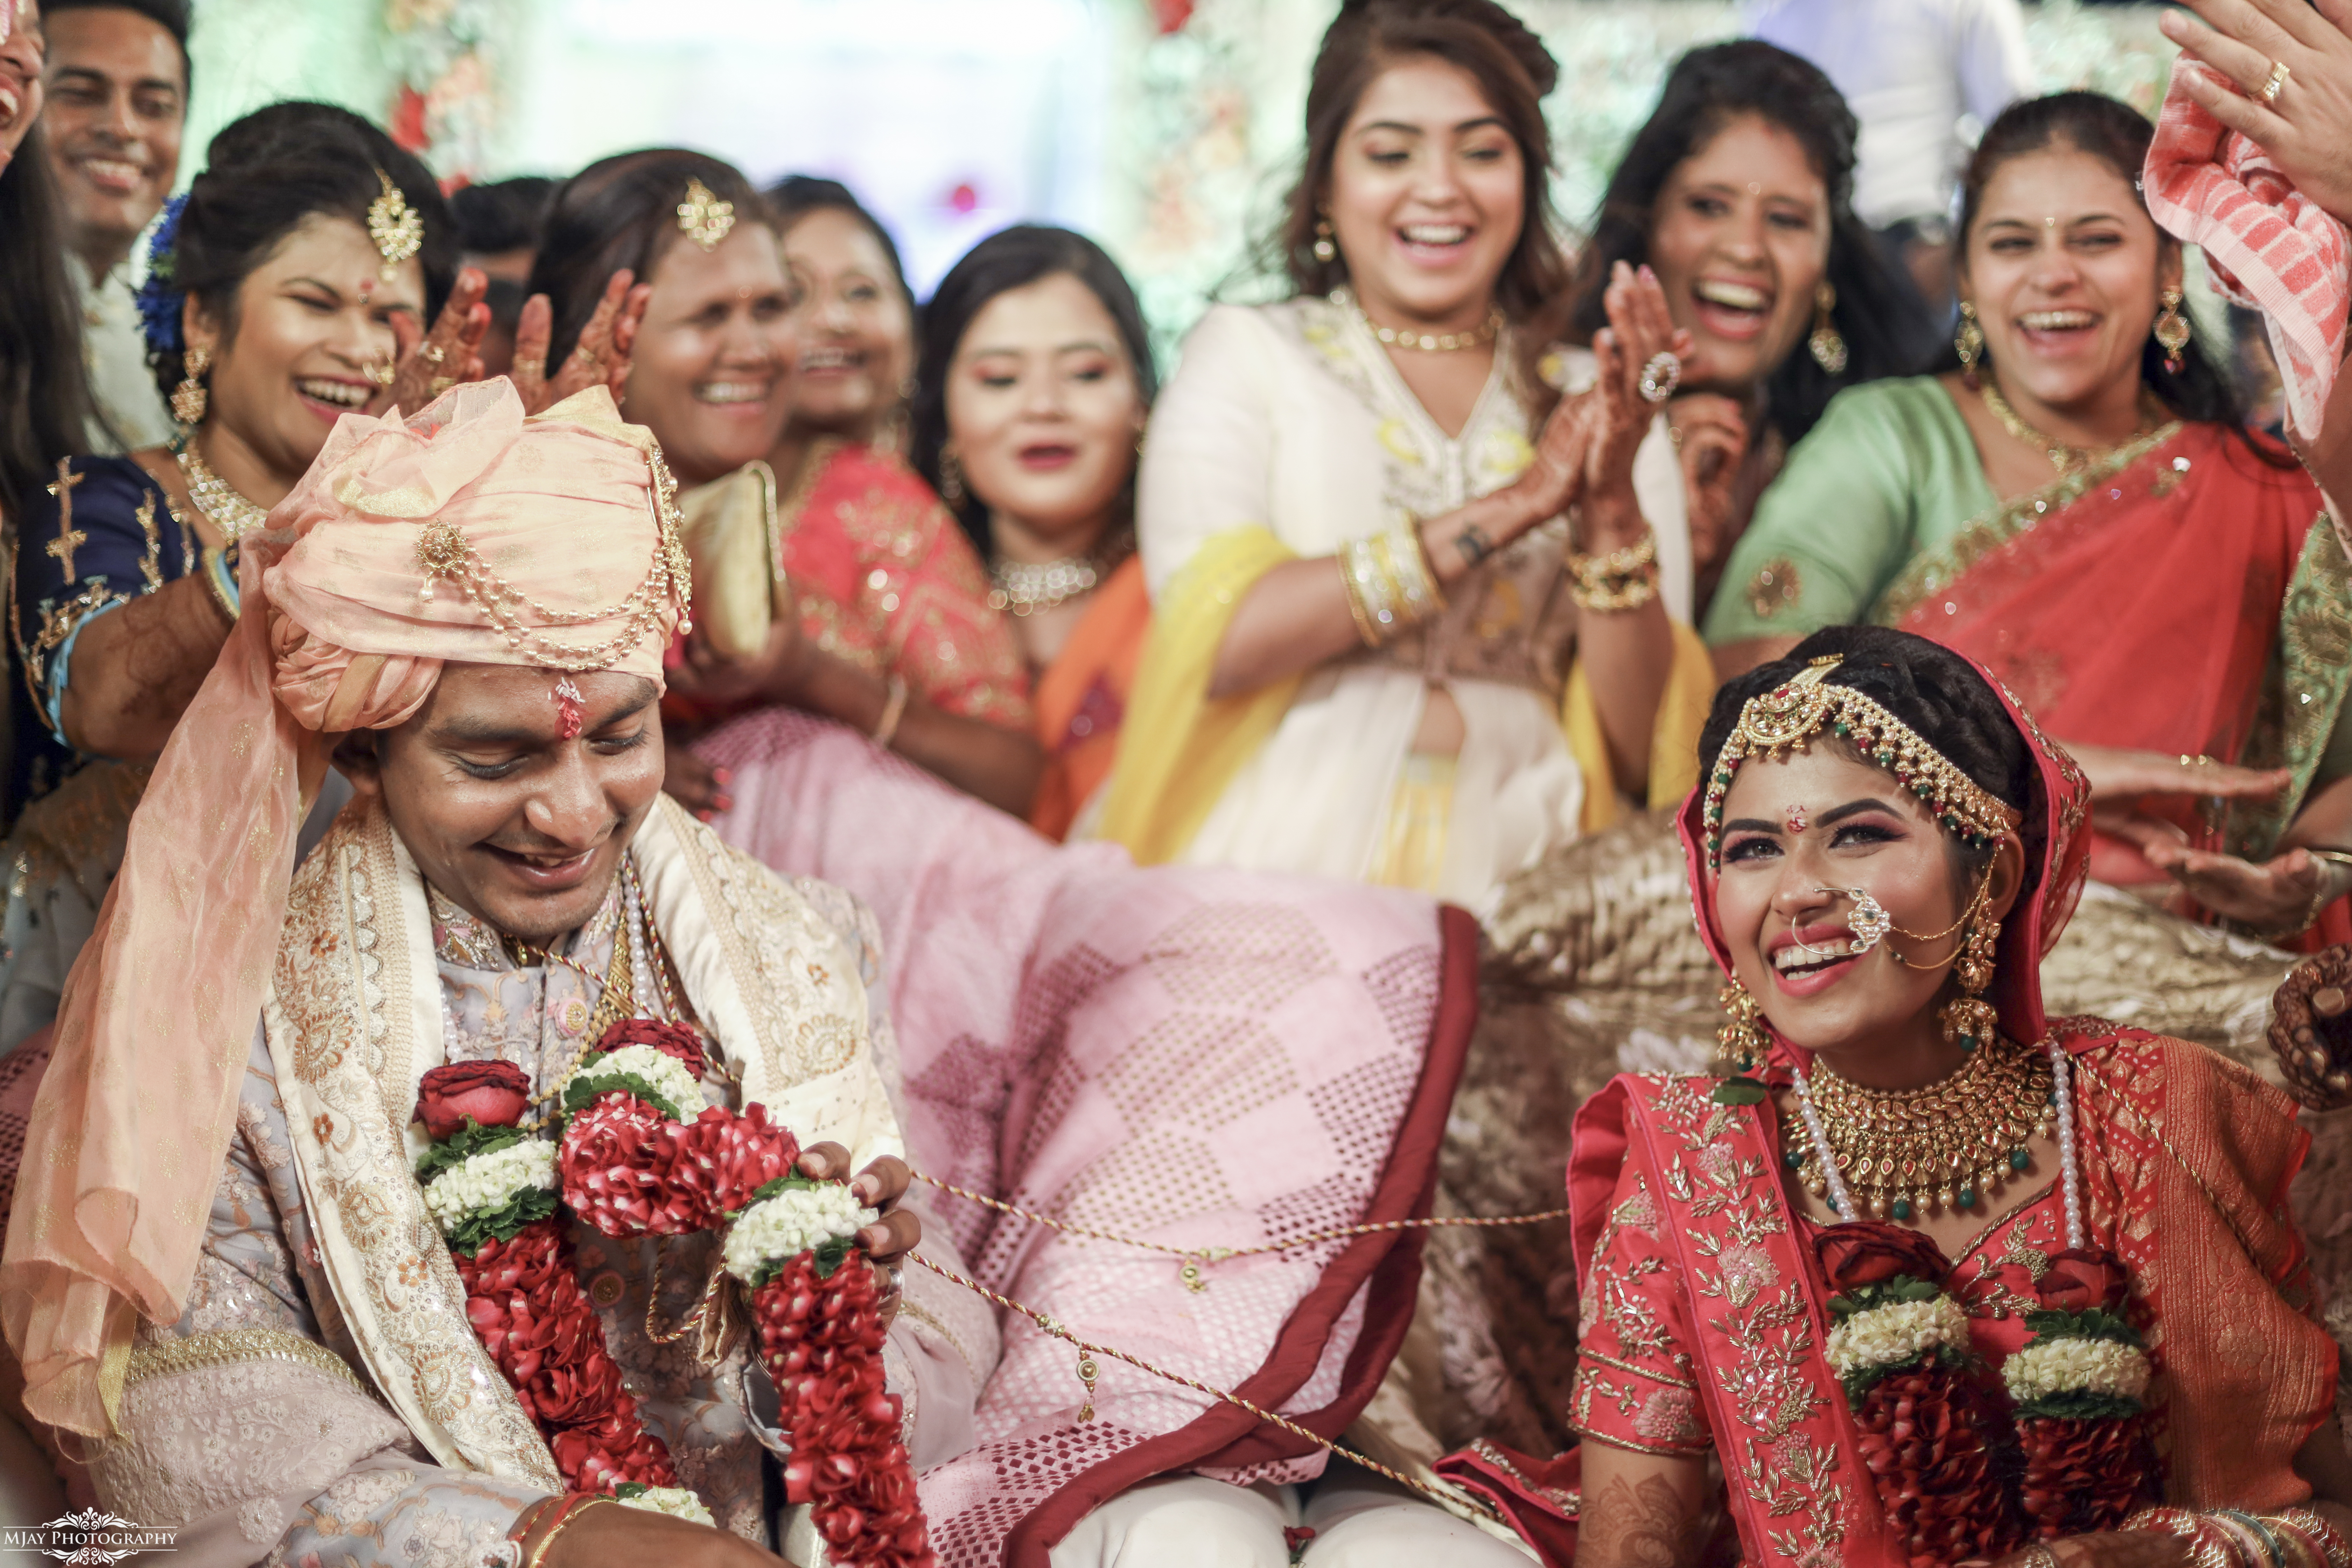 Smiling Bride & Groom During Indian Wedding Rituals